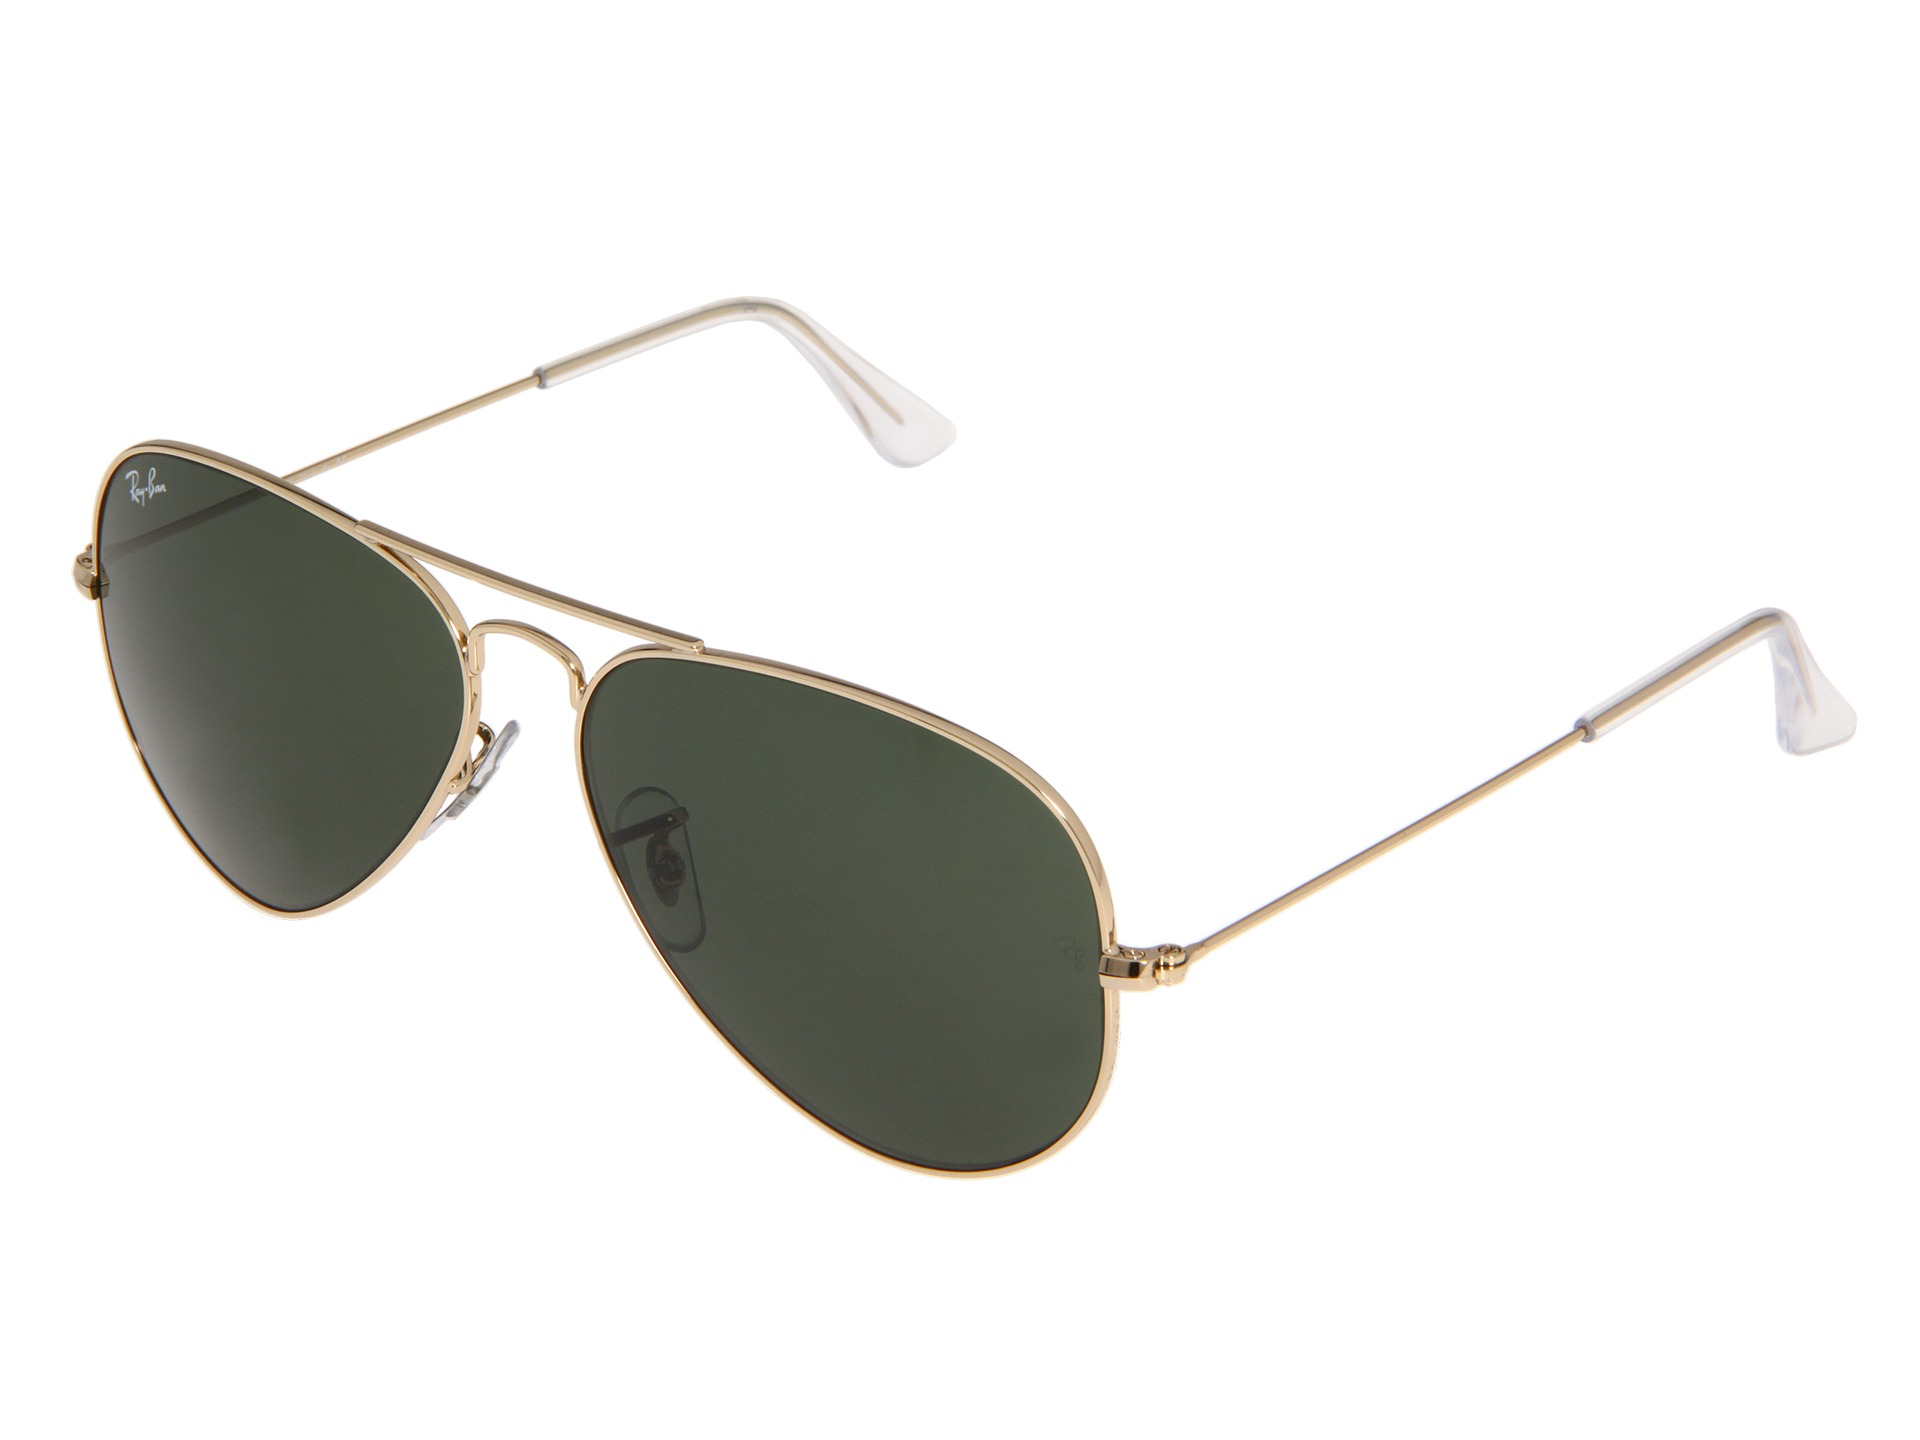 Ray Ban Sunglasses Warranty  ray ban rb3025 original aviator 58mm zappos com free shipping